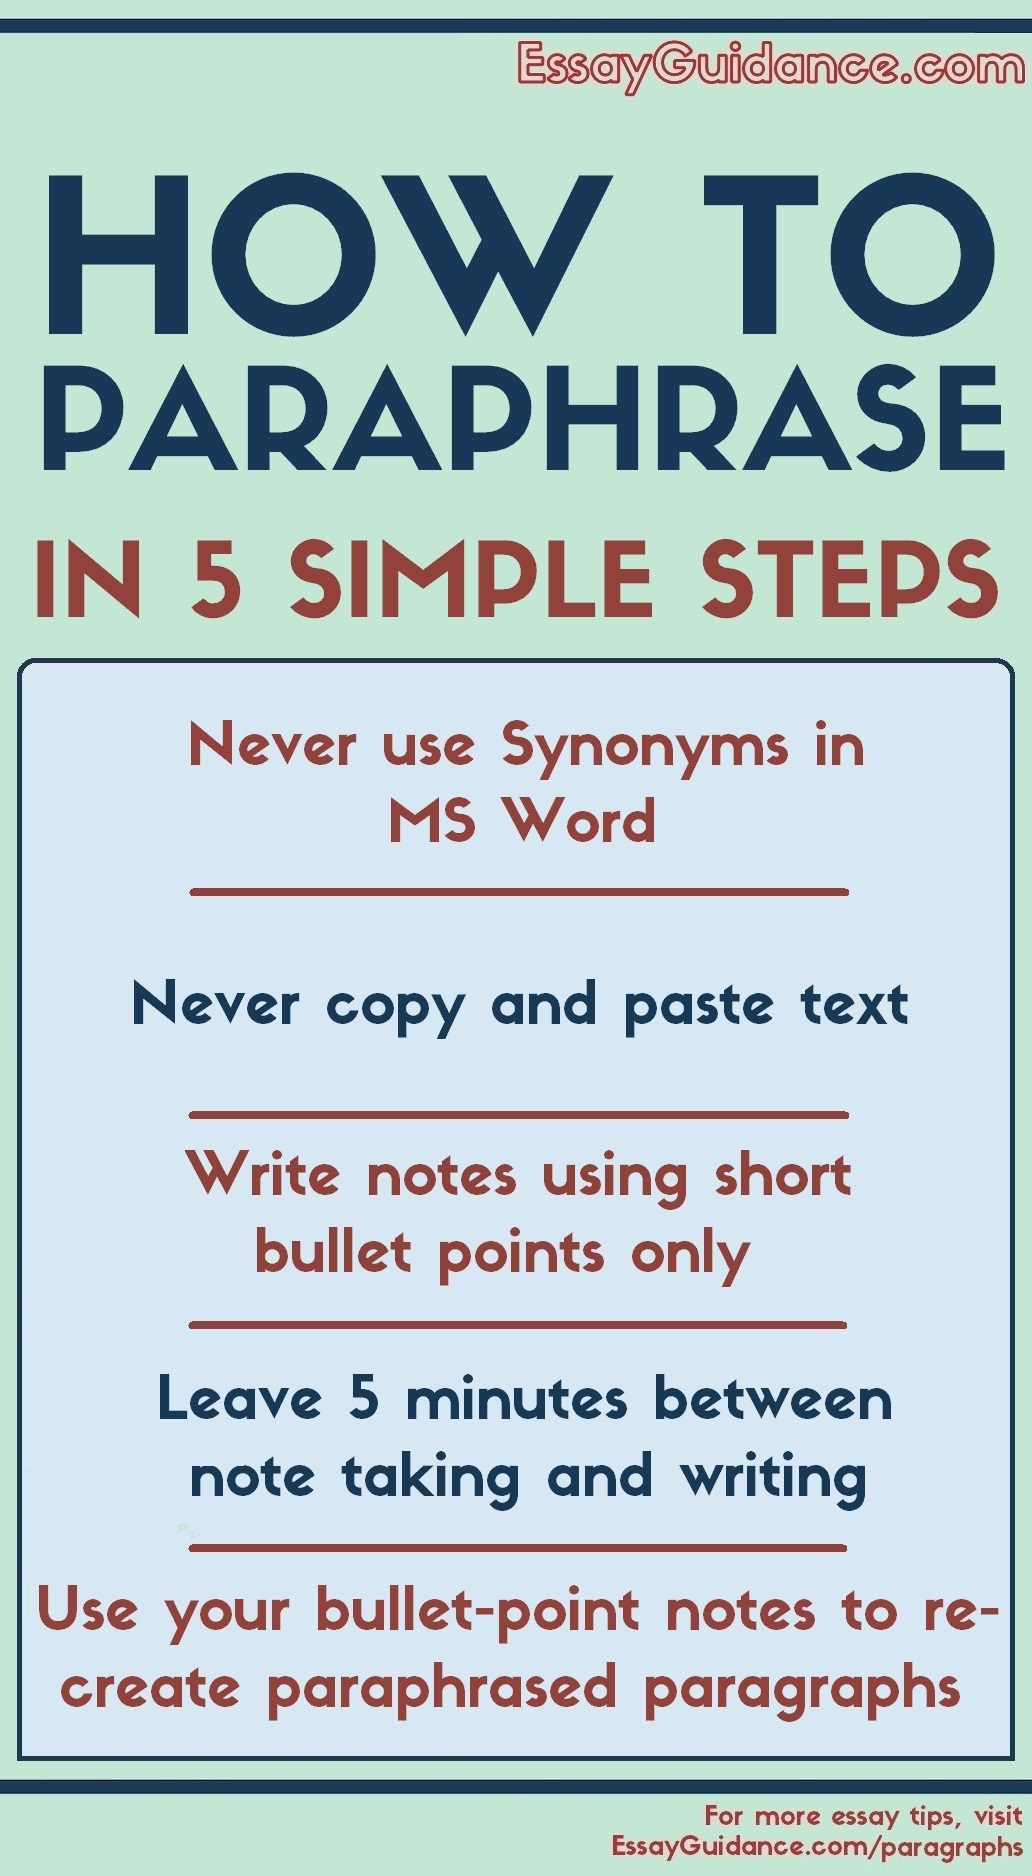 How To Paraphrase Like A Straight Student 5 Simple Step Essay Writing Skill Thesi Statement Skills Motivational Activity For Paraphrasing